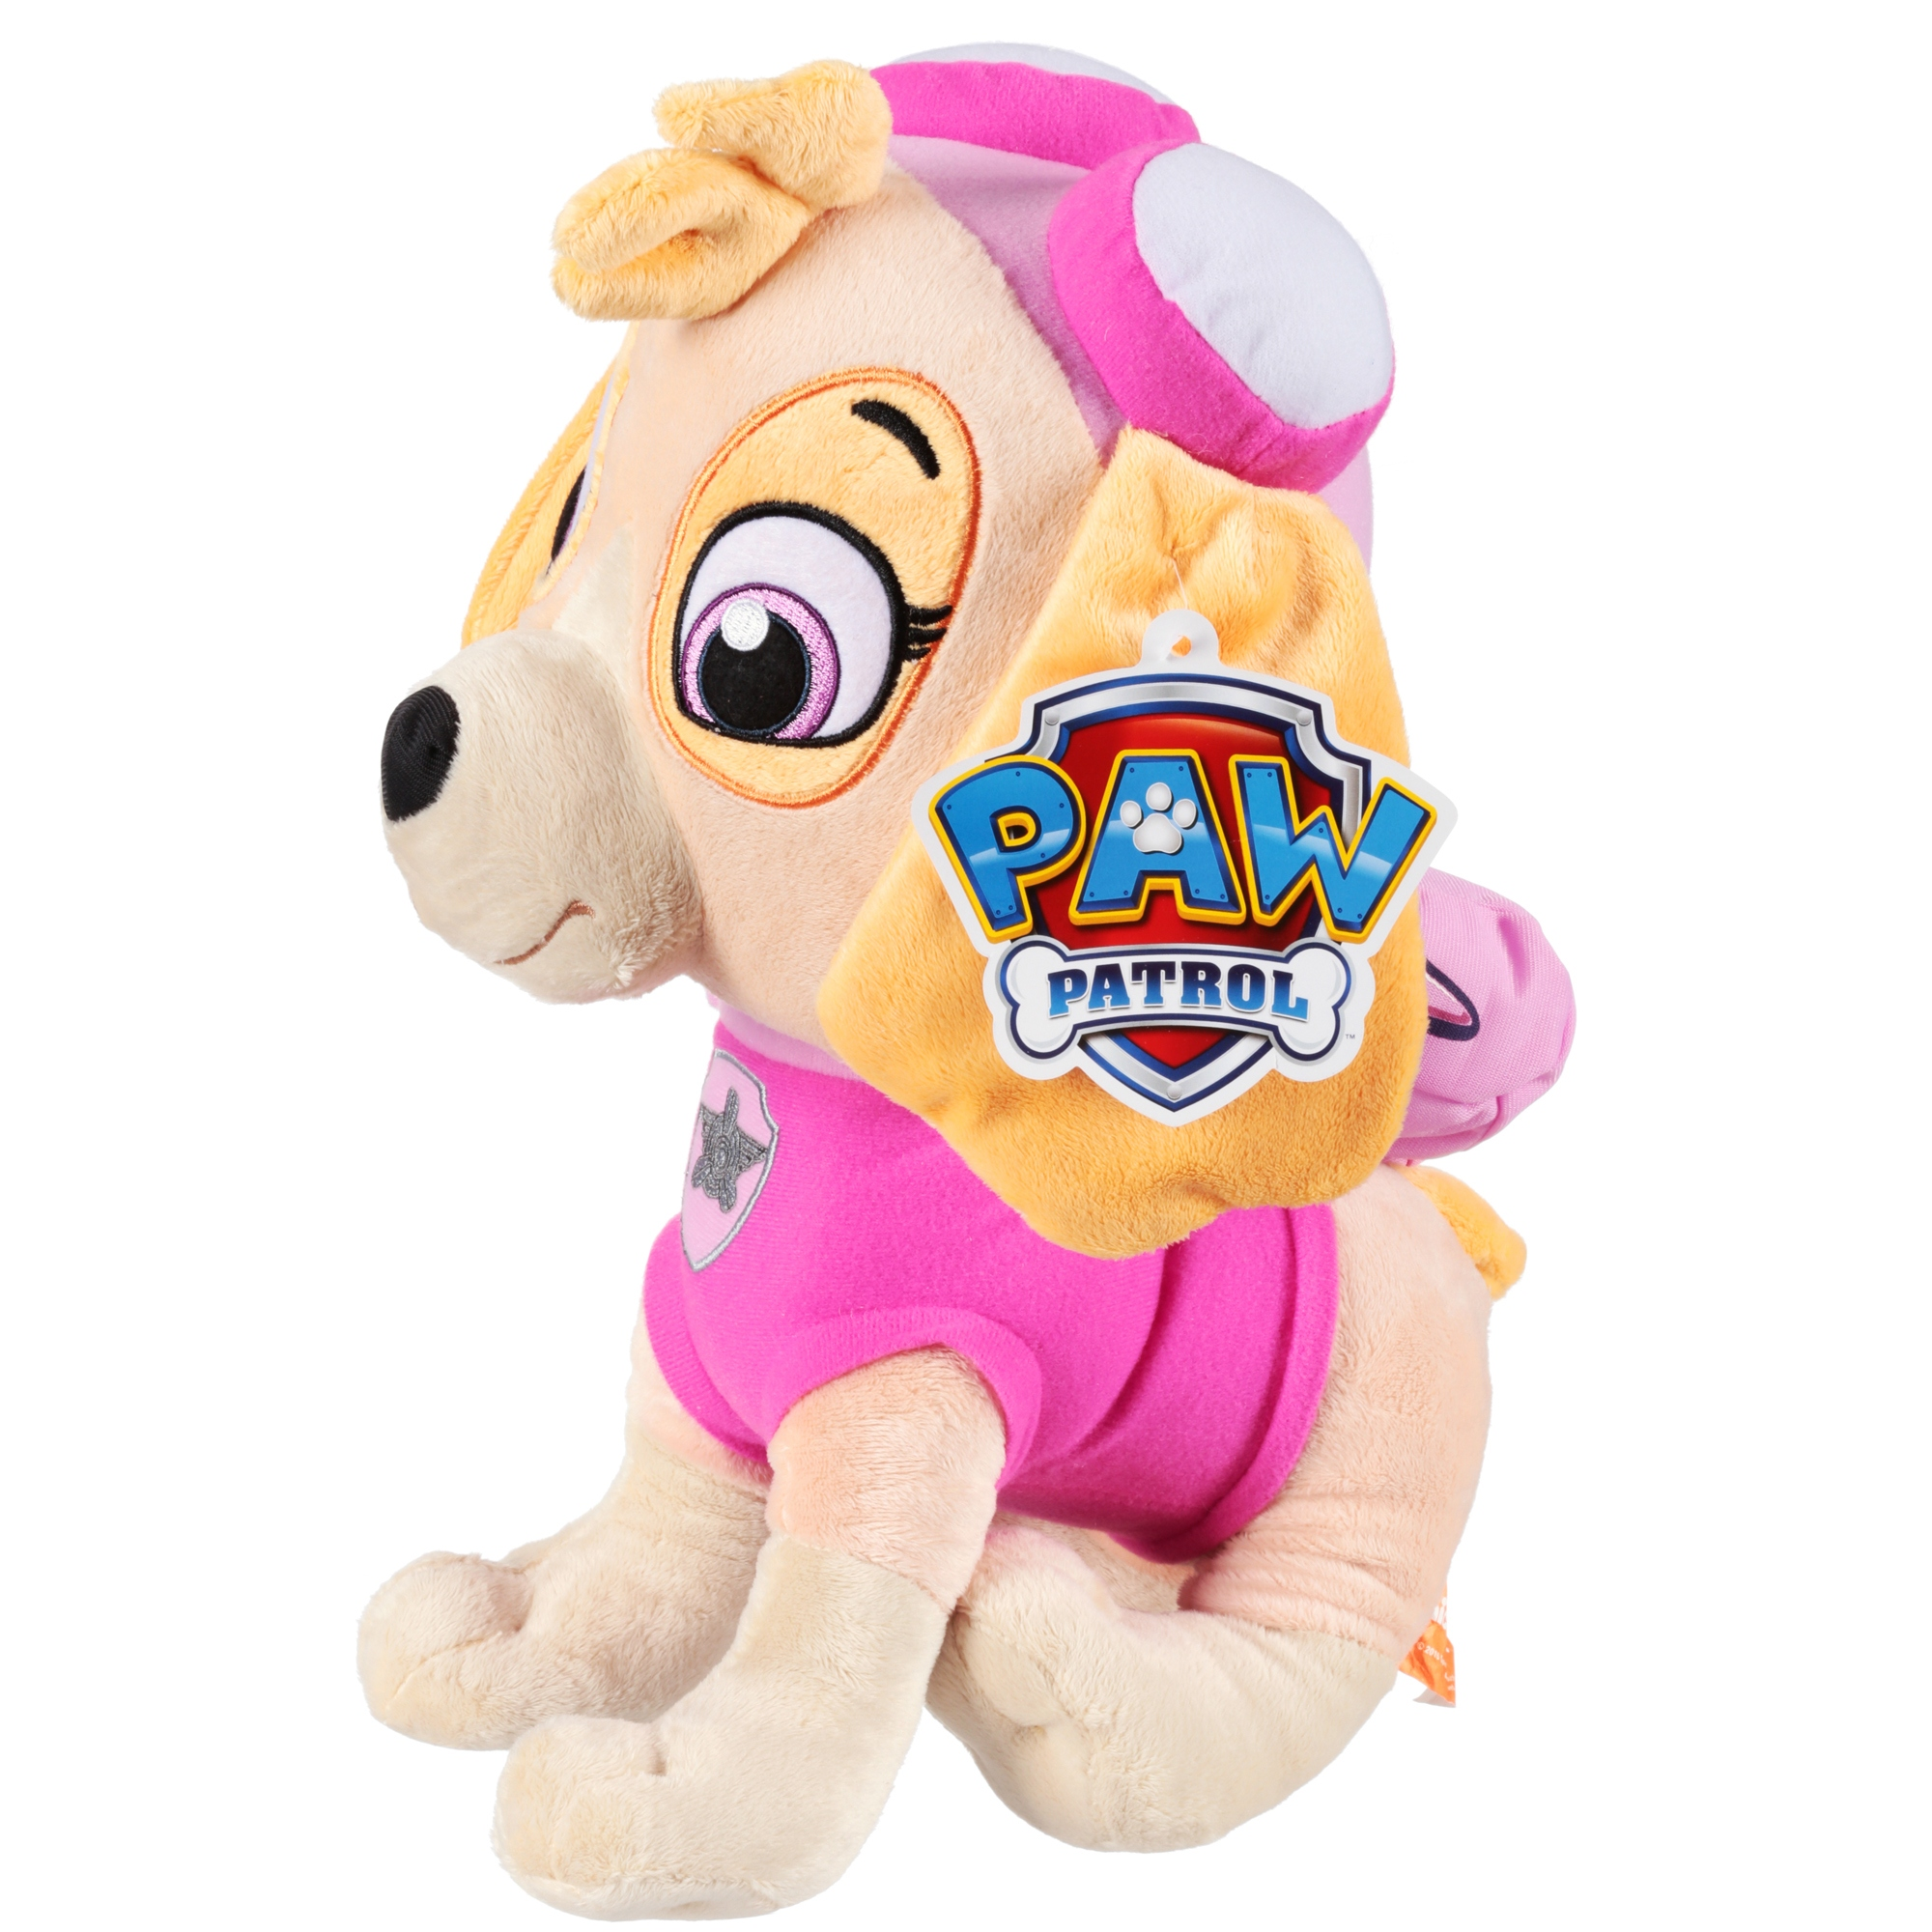 Funhouse® Paw Patrol™ The One and Only Cuddle Pillow®